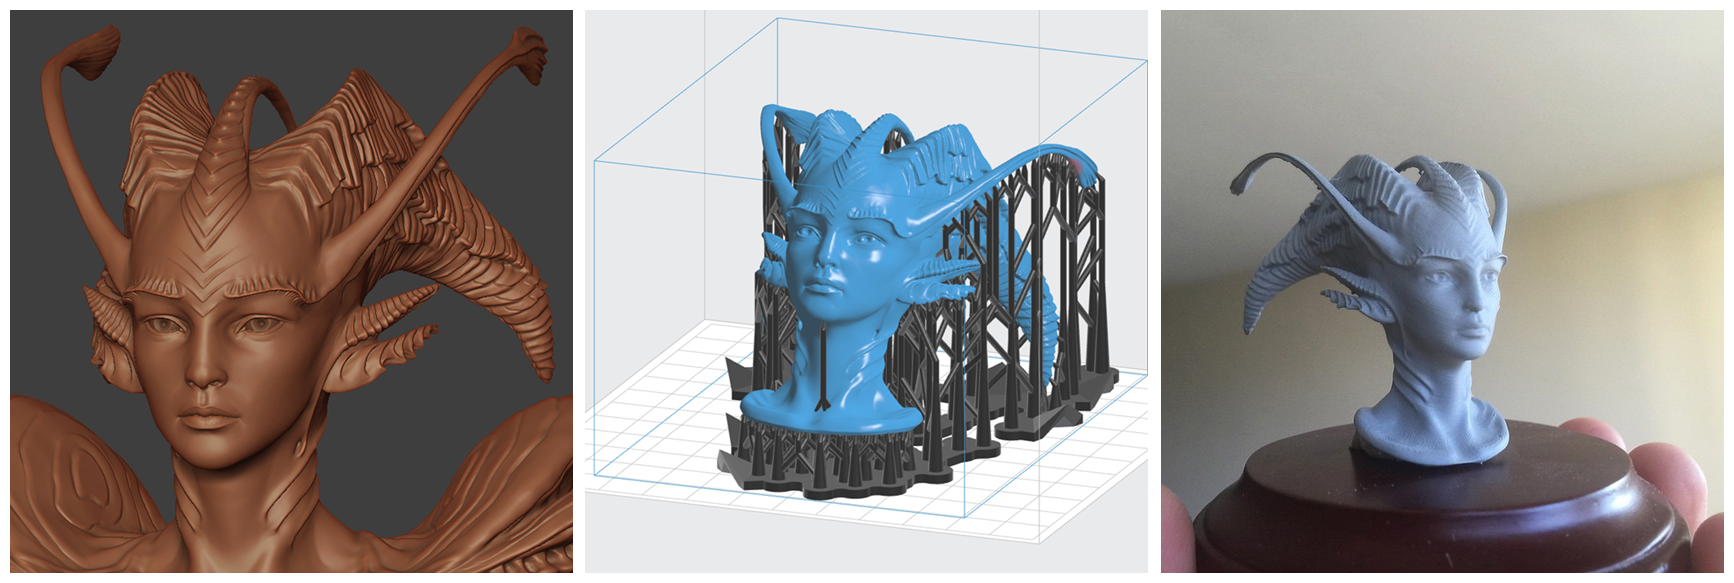 design process for modeling and 3d printing mermaids